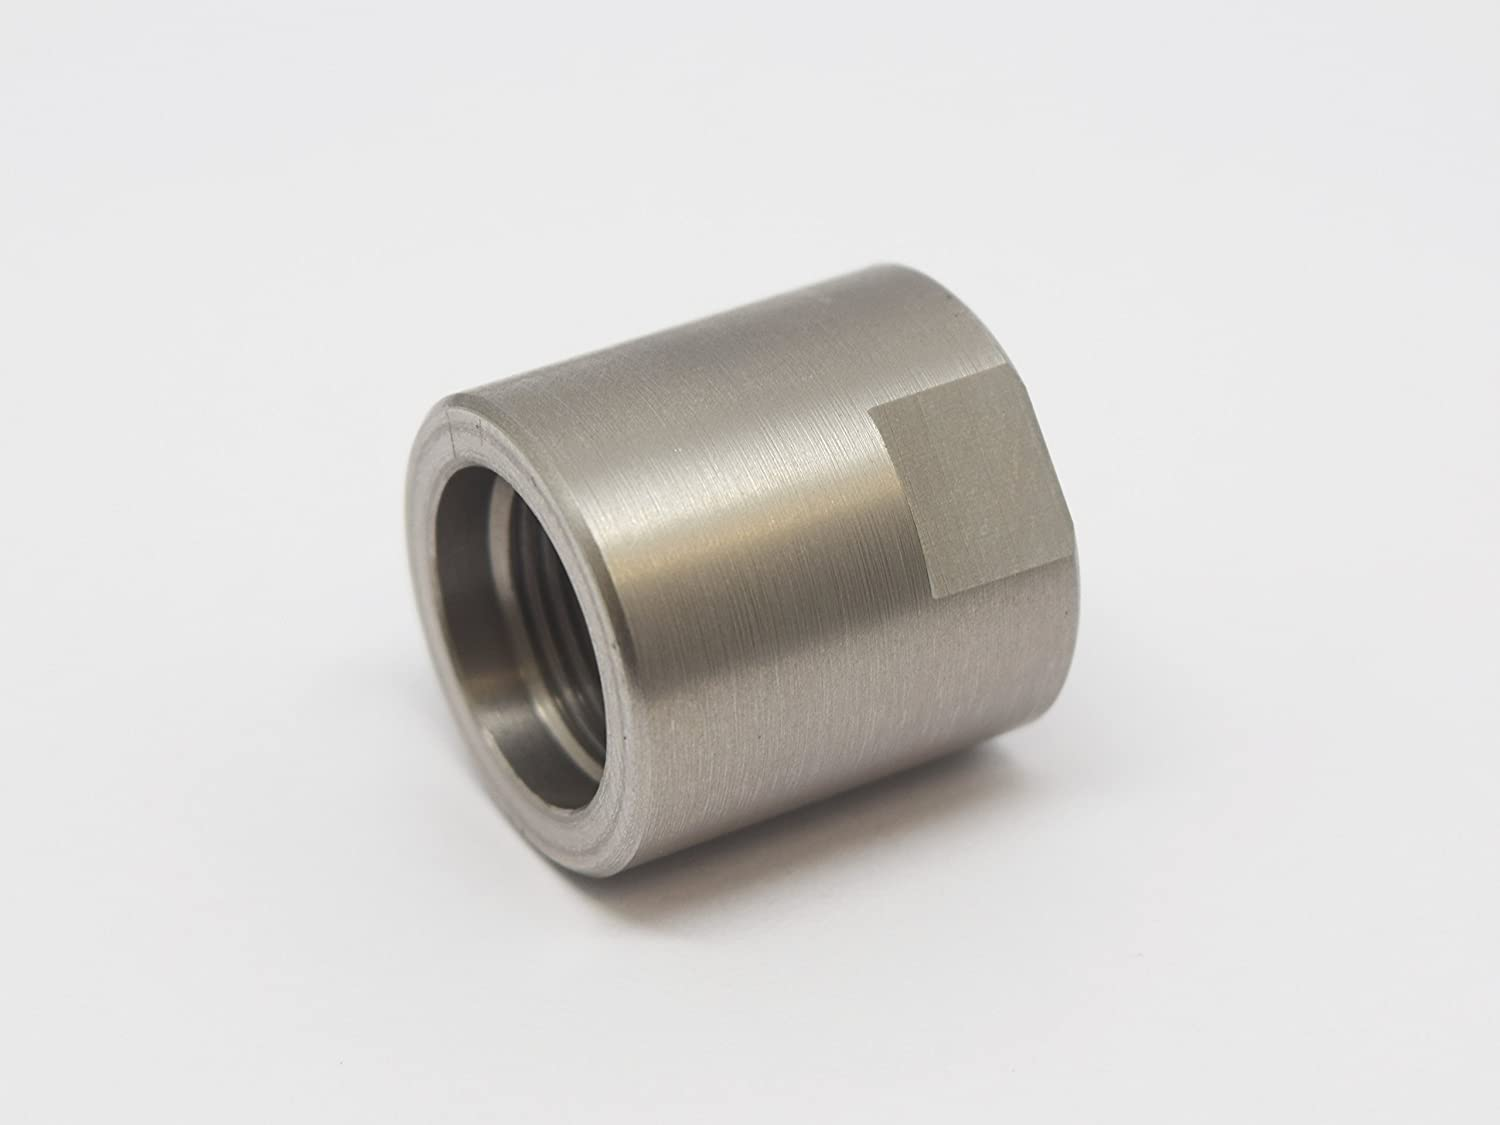 Barrel Thread Protector Stainless Steel Ring Style 1//2-28 Thread Size